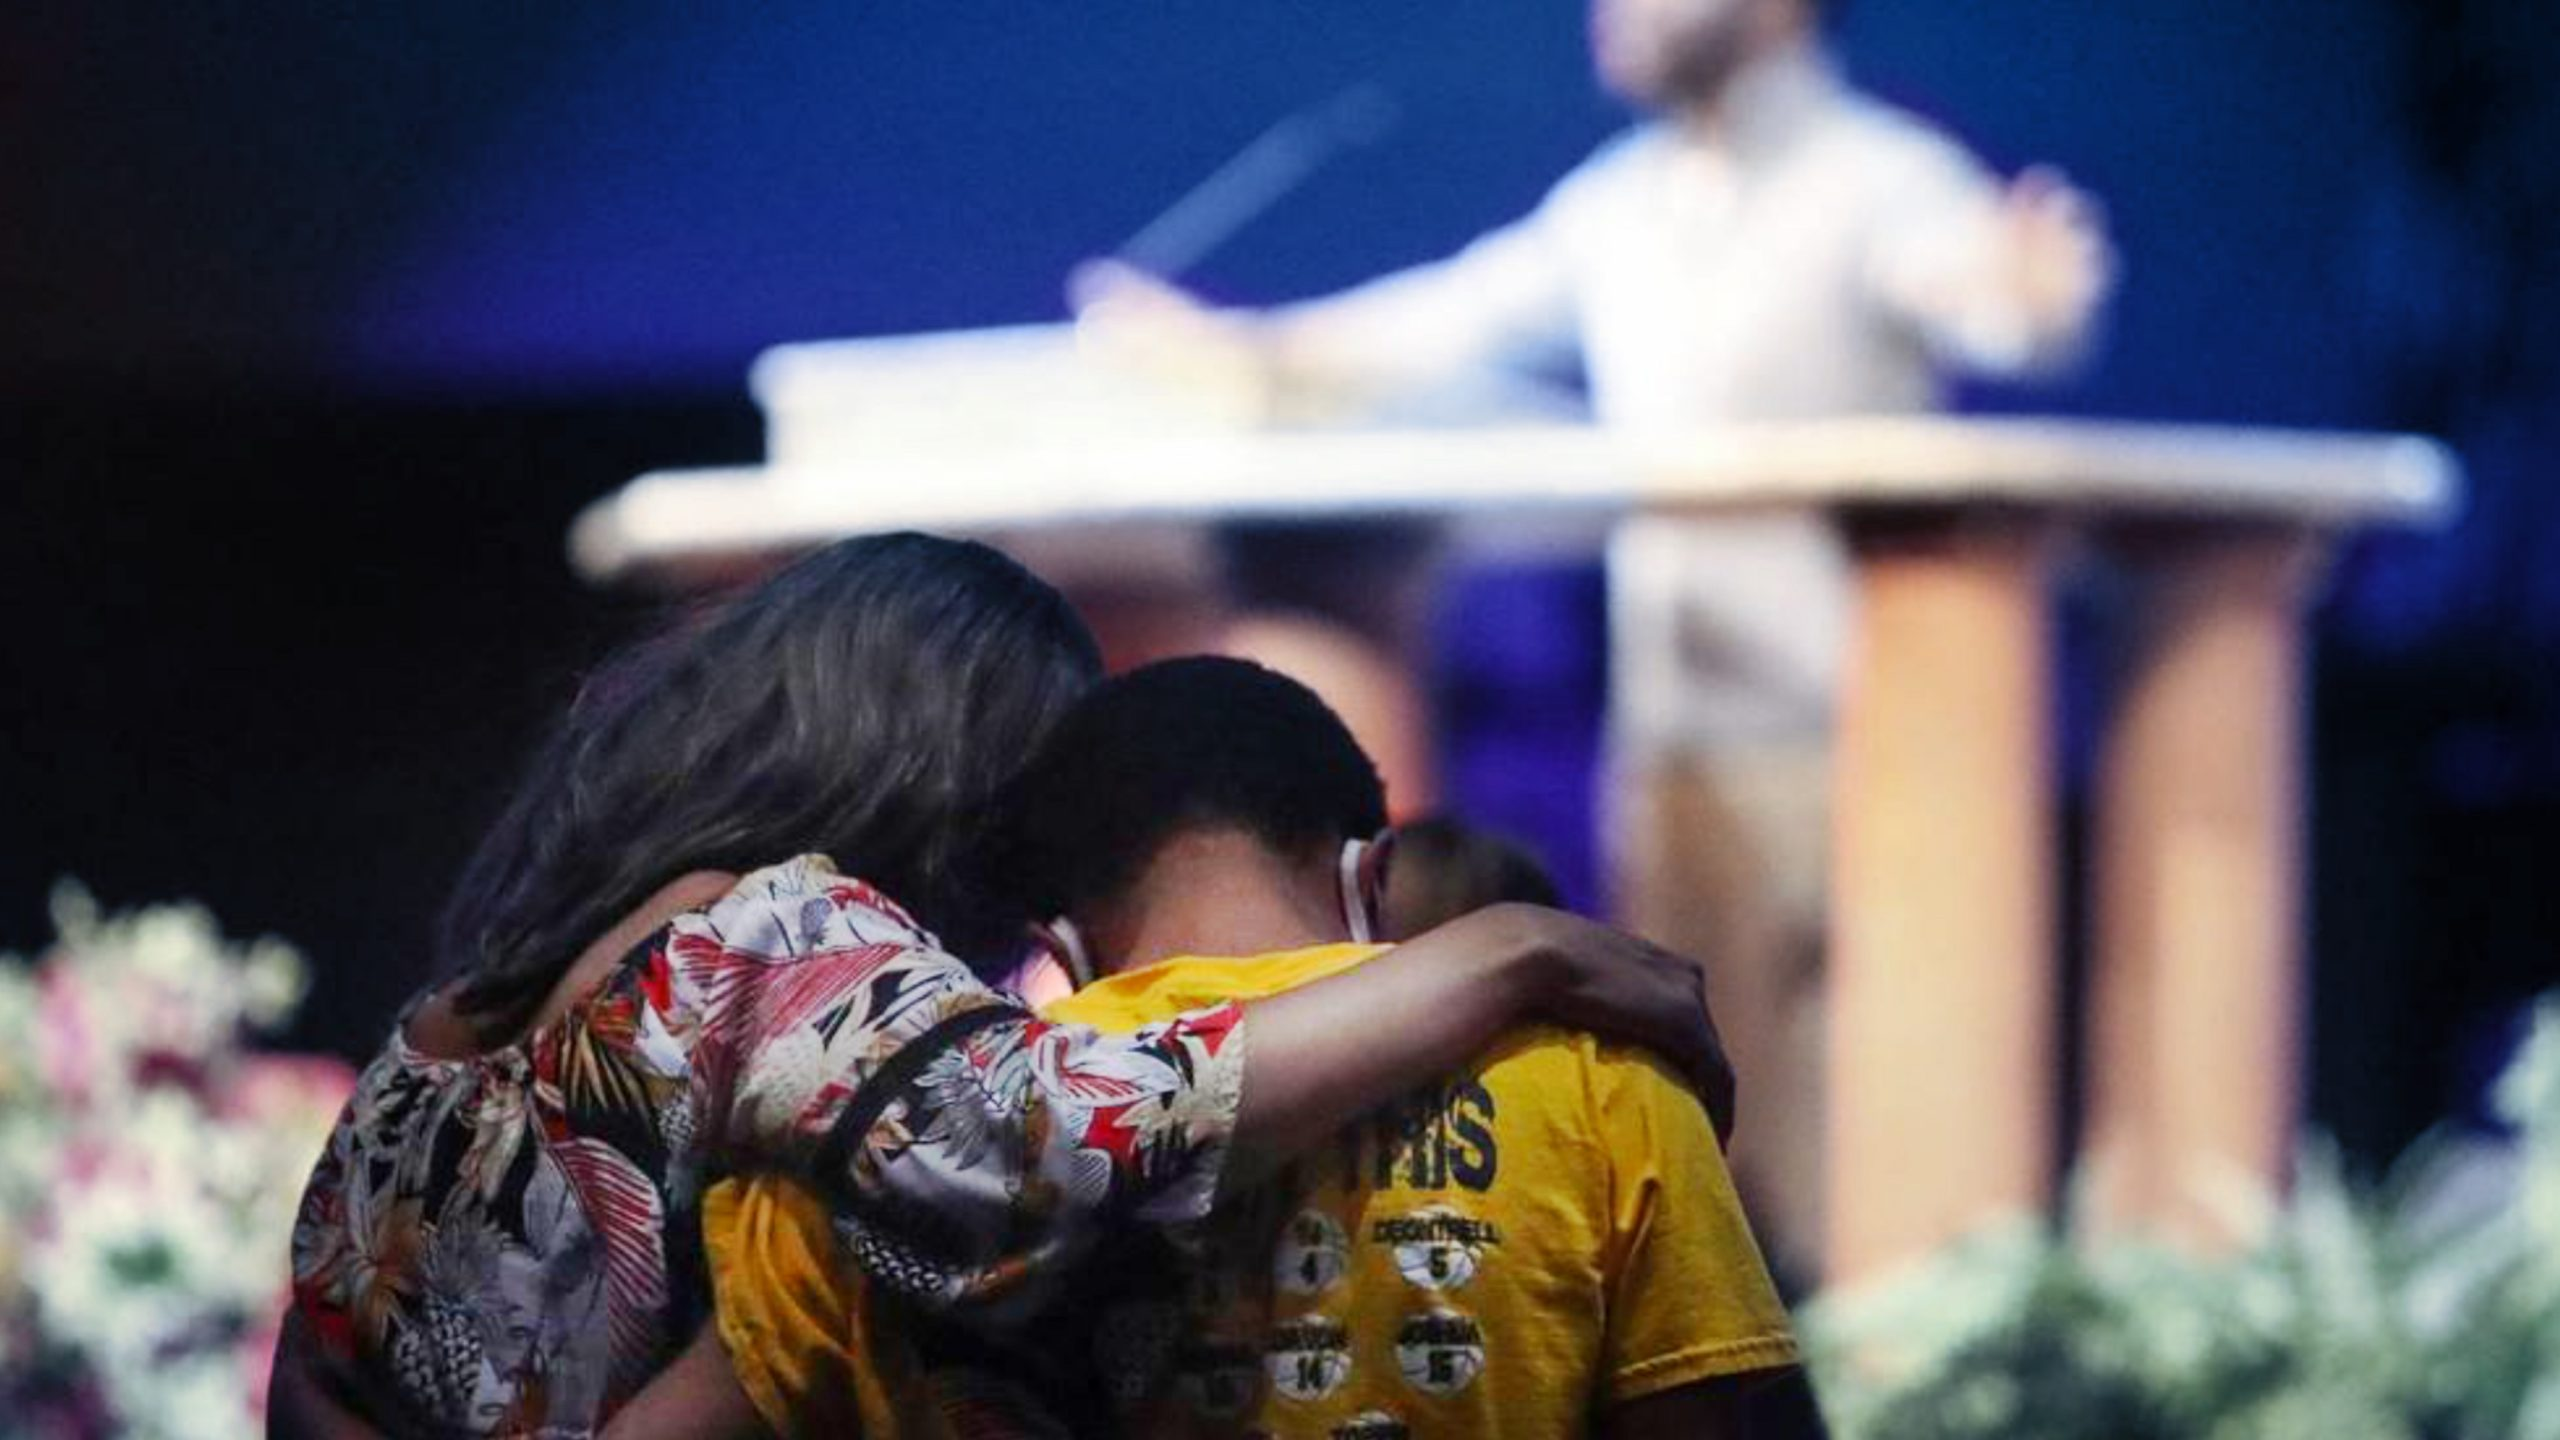 'Touch His Heart, Jesus': Texas Student Prays for Gunman After School Shooting - Harbingers Daily